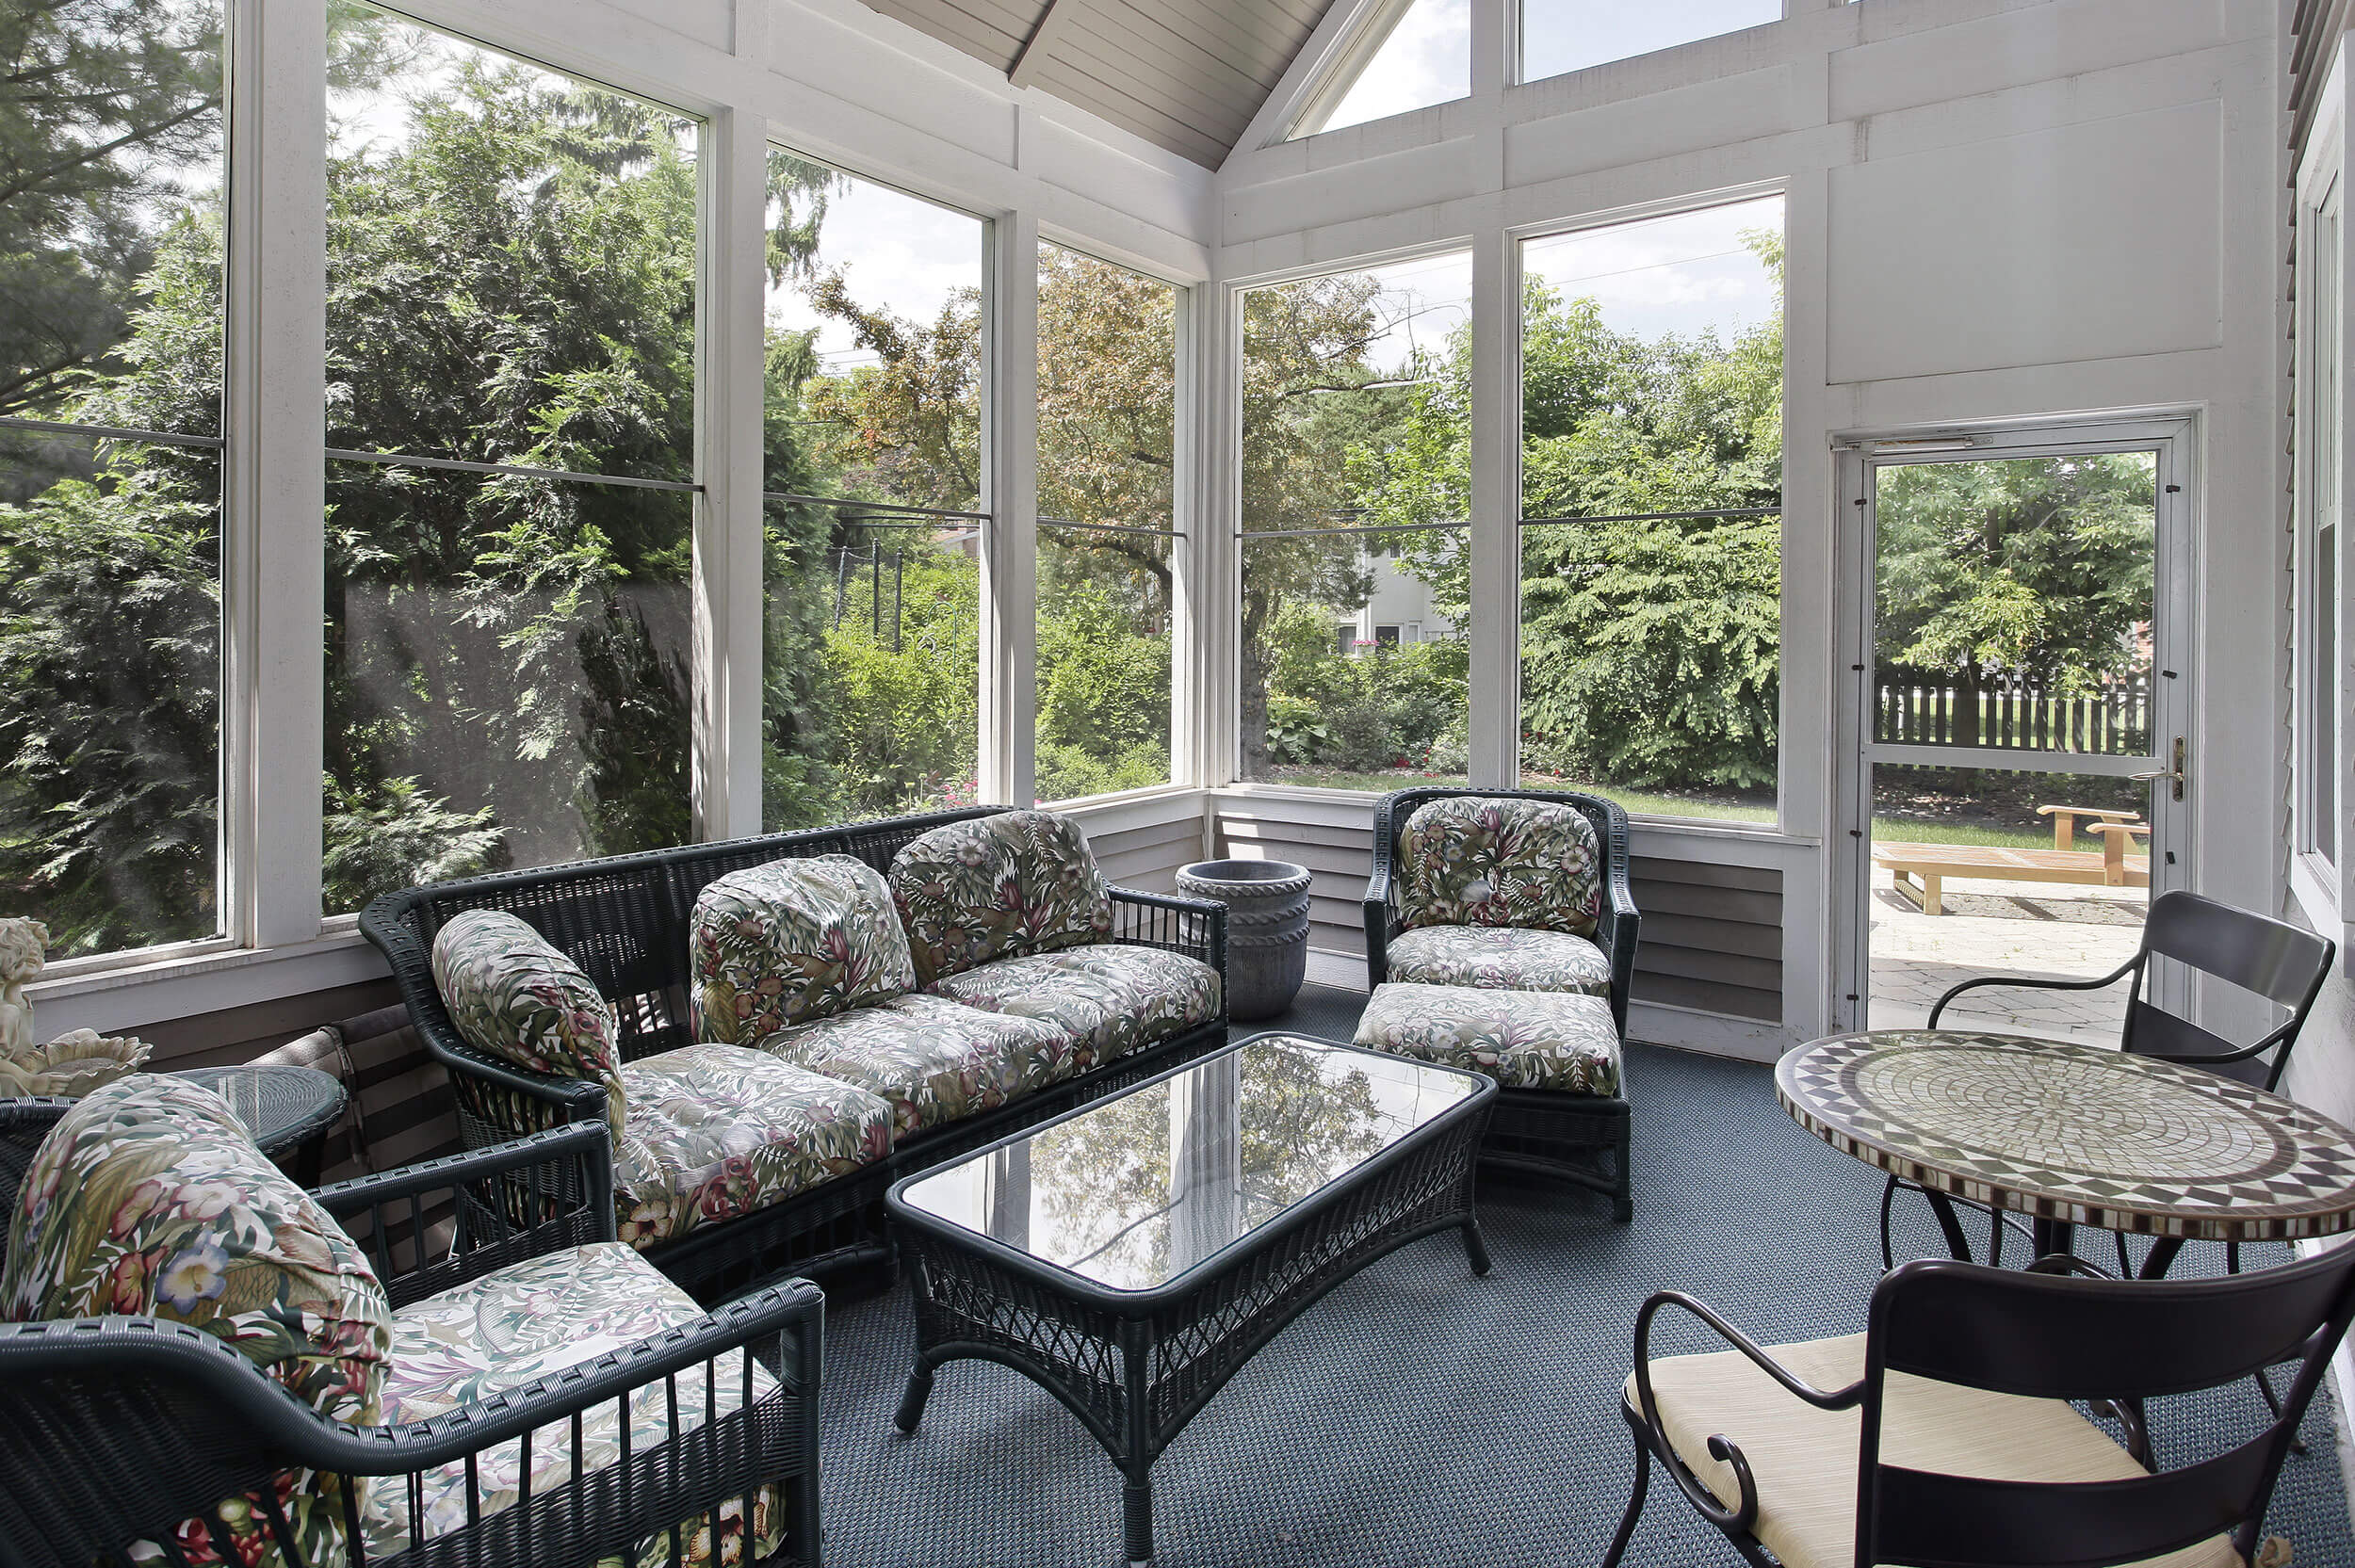 A view from inside a furnished sunroom